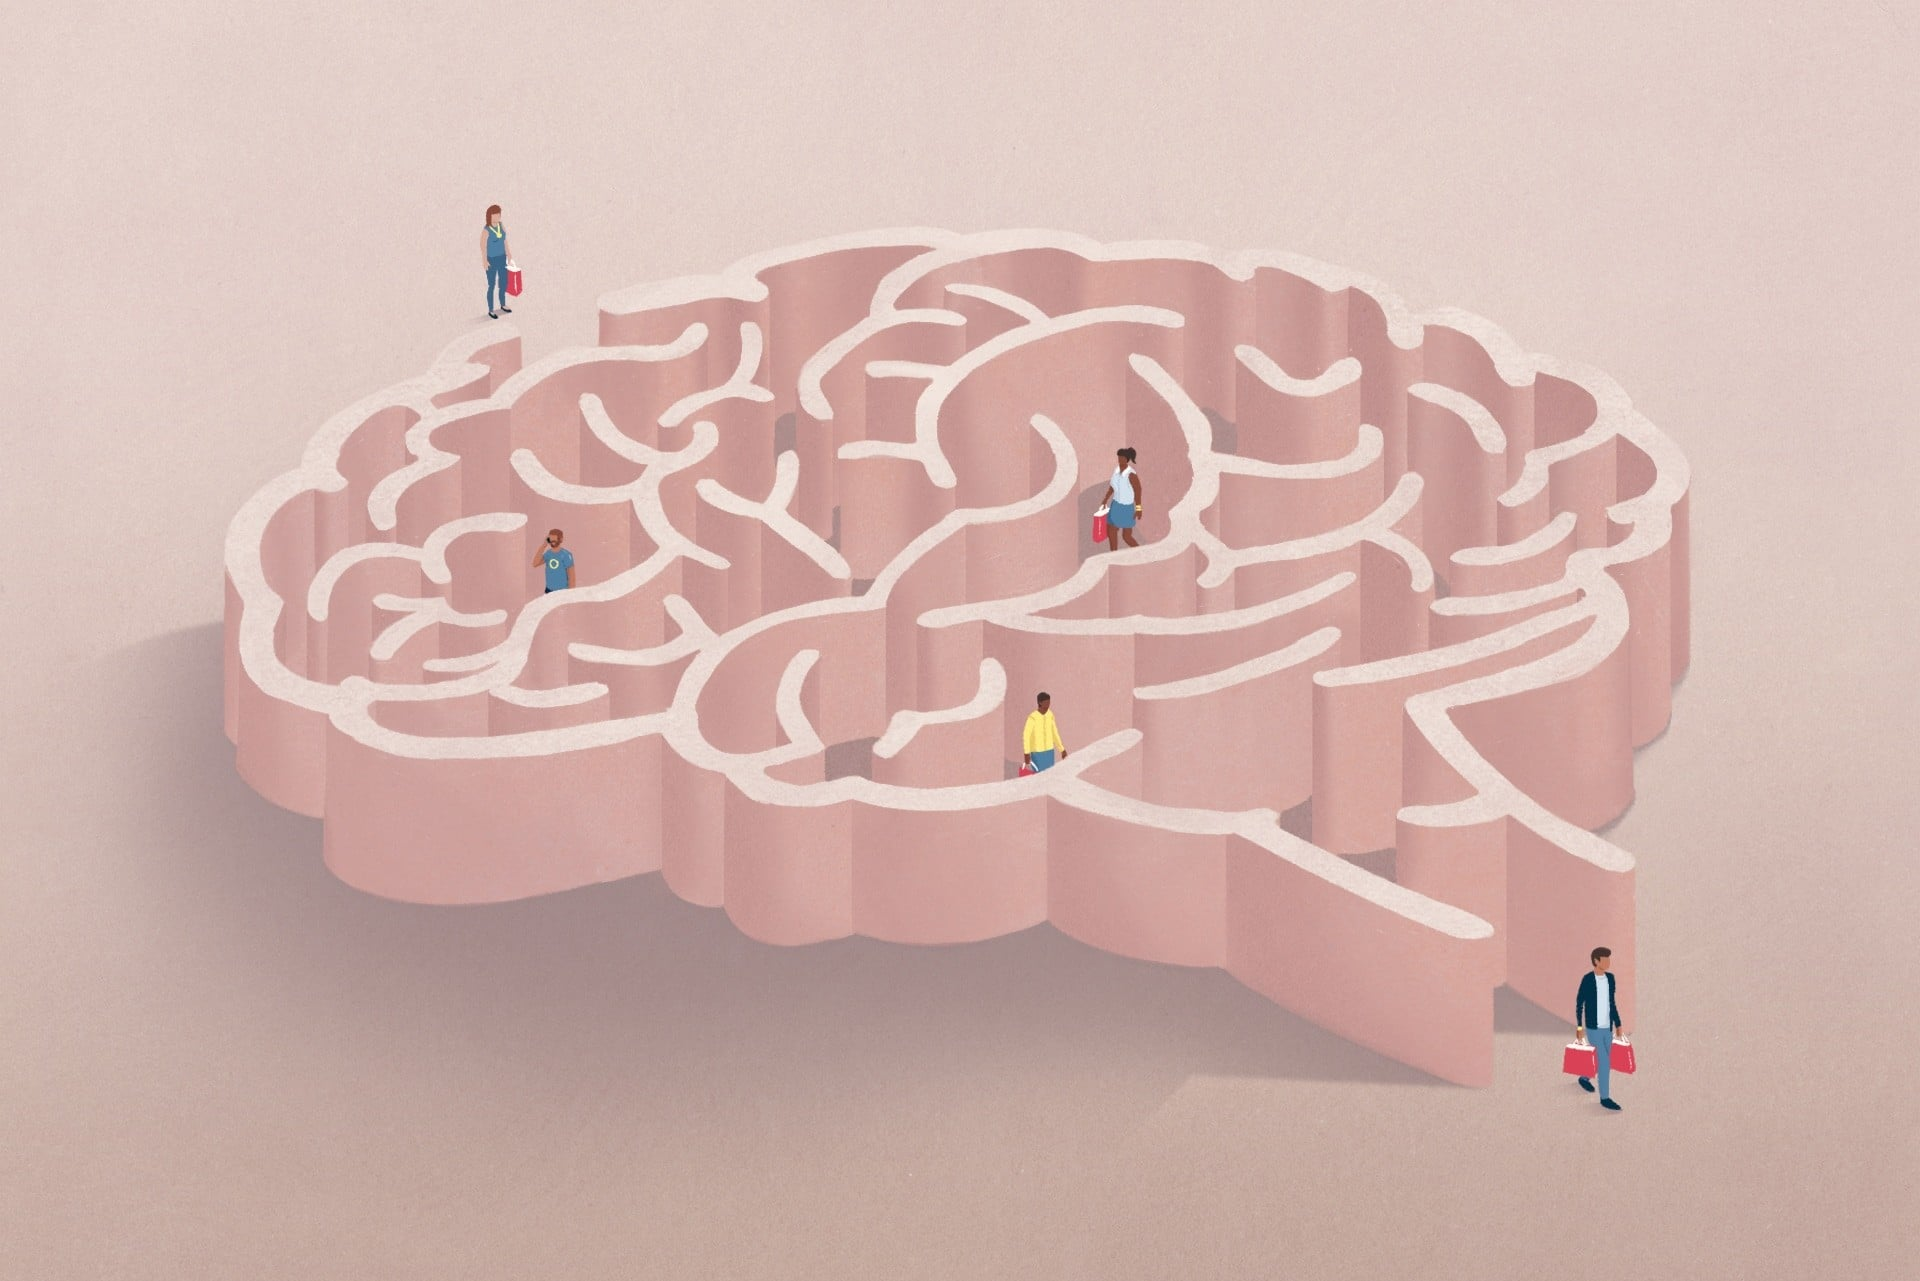 people with shopping bags in a brain shape figure